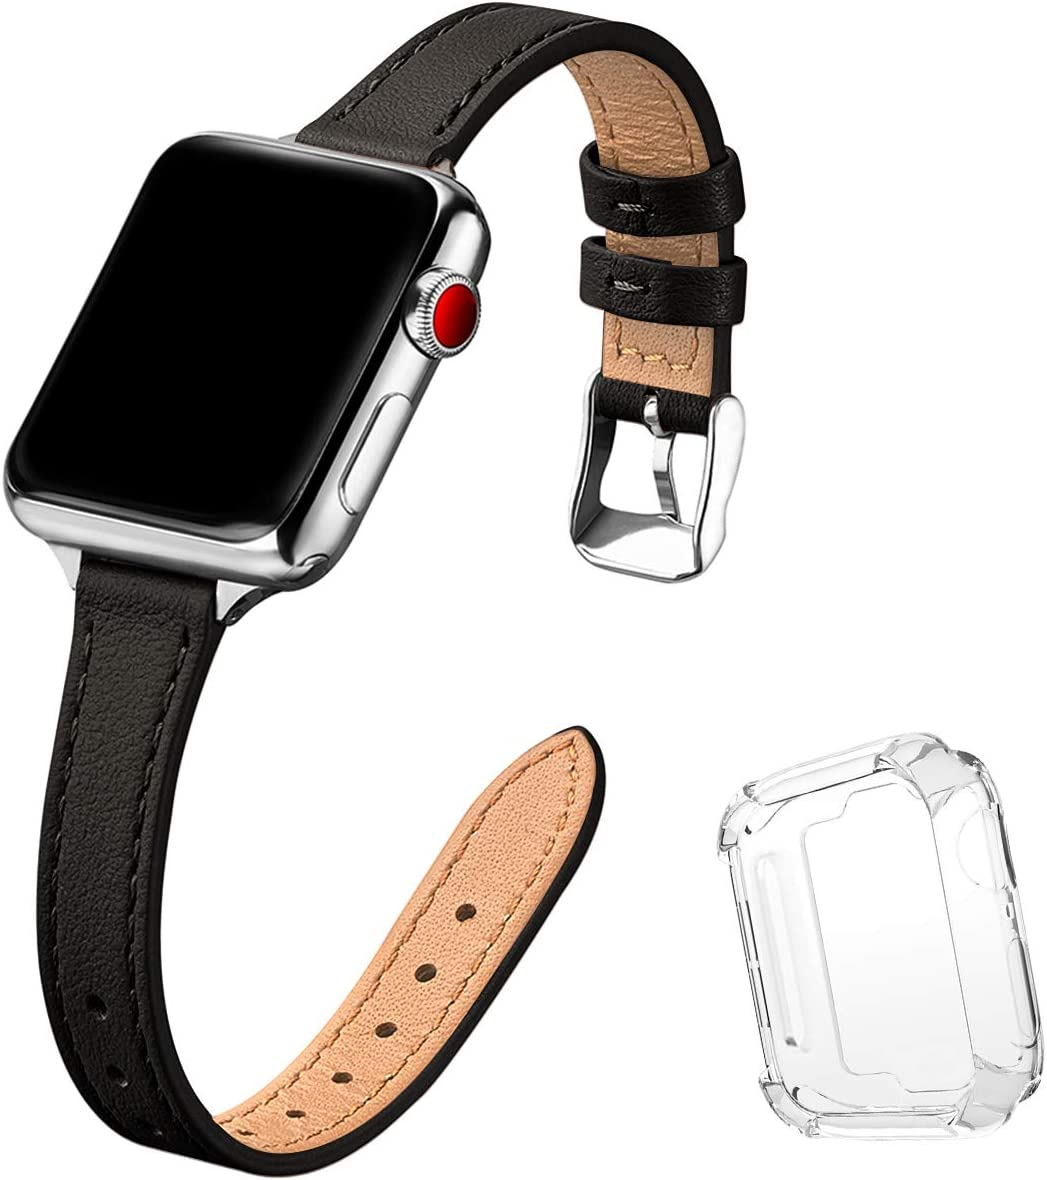 STIROLL Slim Leather Bands Compatible with Apple Watch Band 38mm 40mm 42mm 44mm, Top Grain Leather Watch Thin Wristband for iWatch SE Series 6/5/4/3/2/1 (Black with Silver, 38mm/40mm)